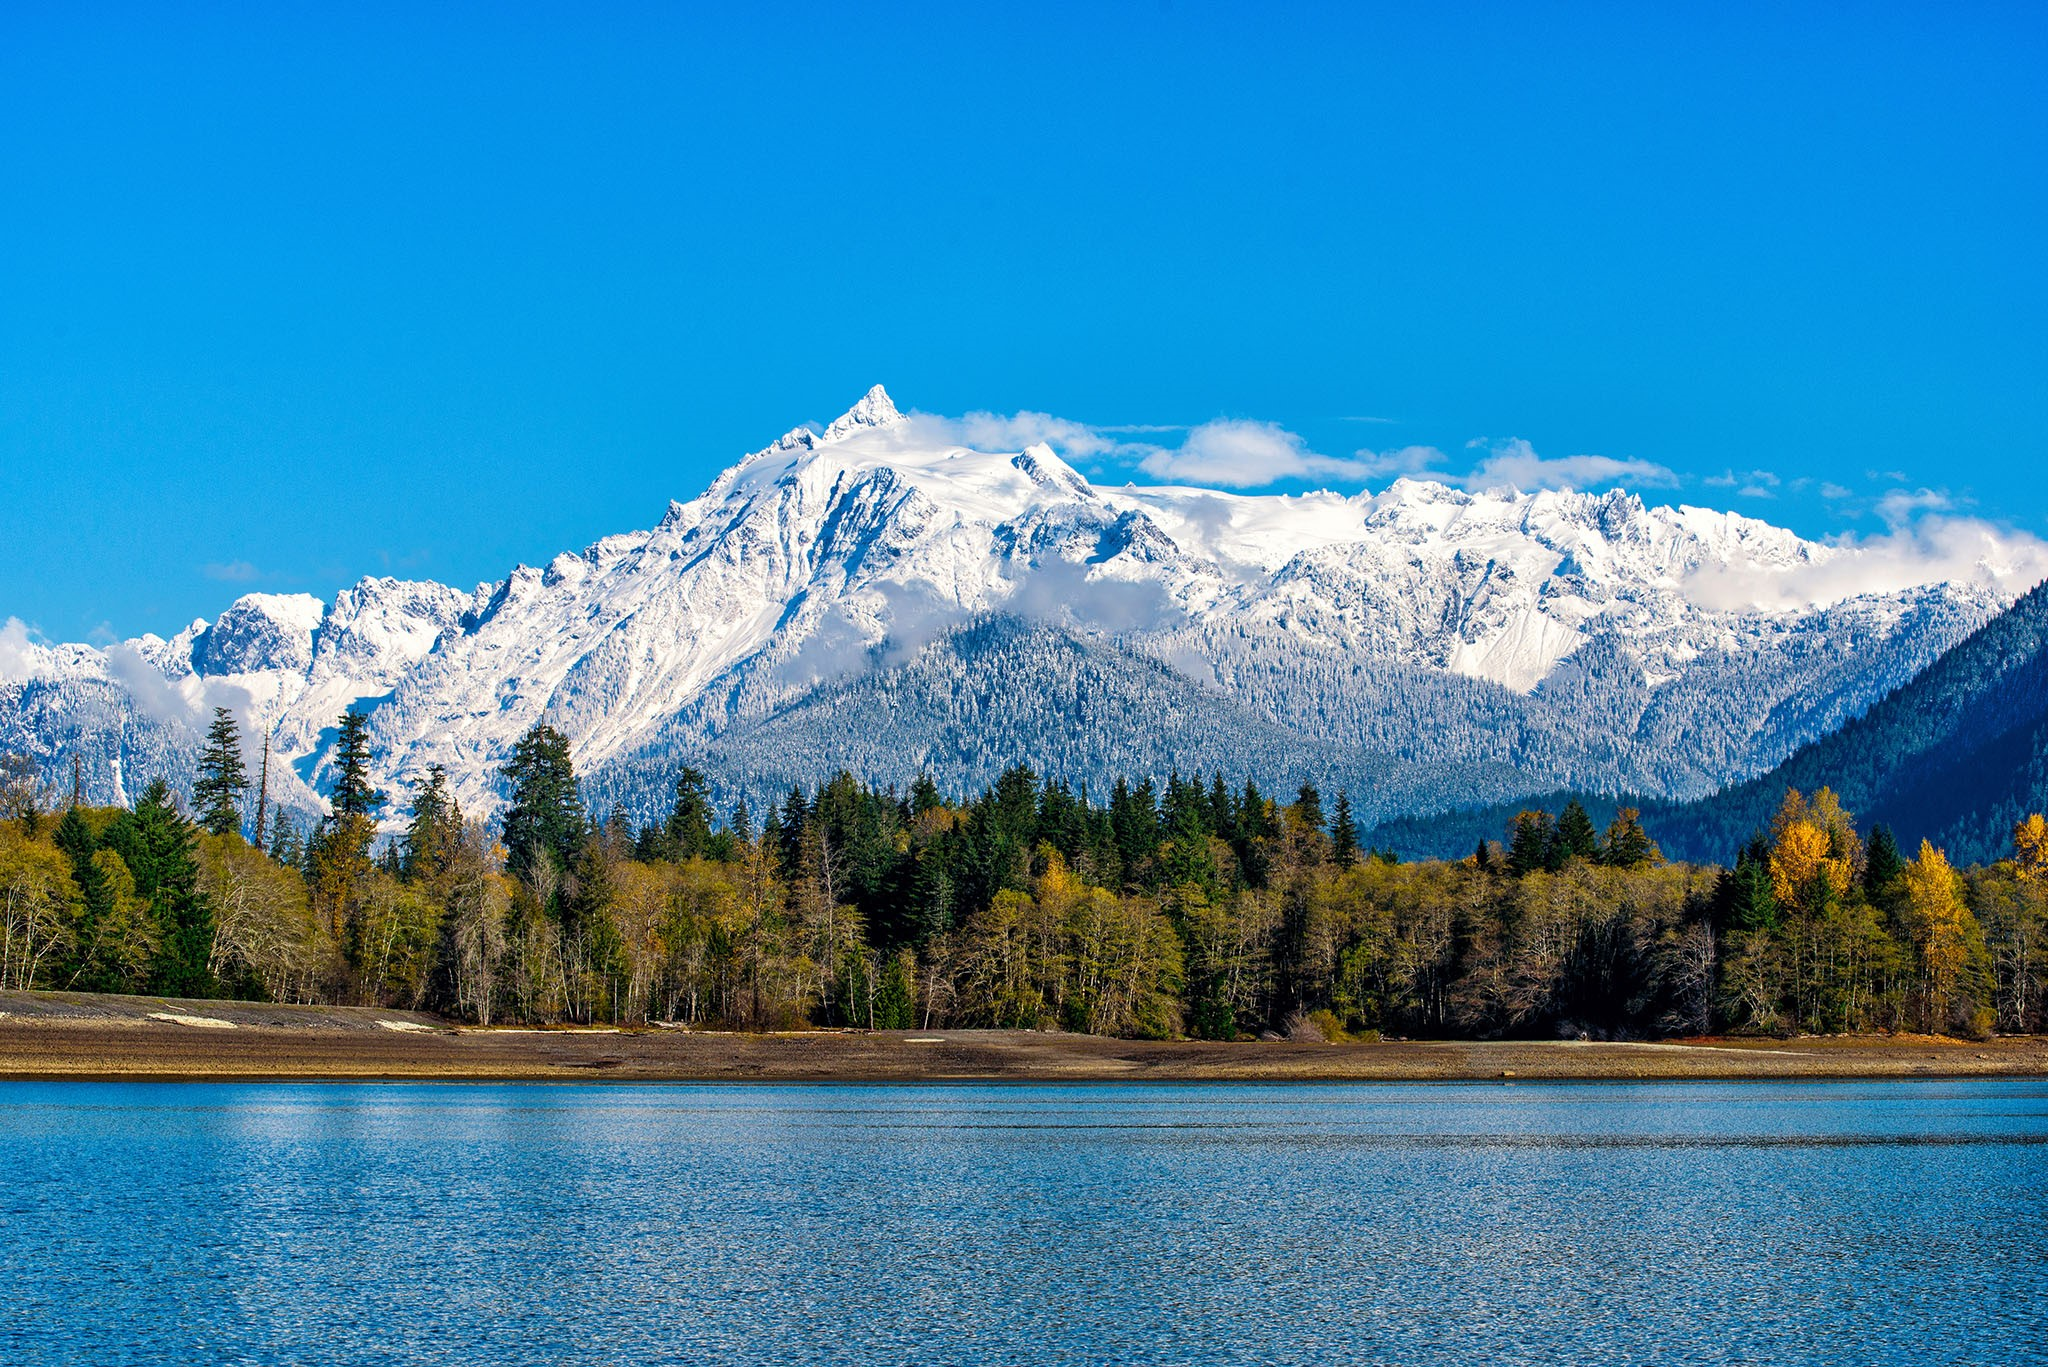 Mount Shuksan from Baker Lake Photo Credit: David Larson